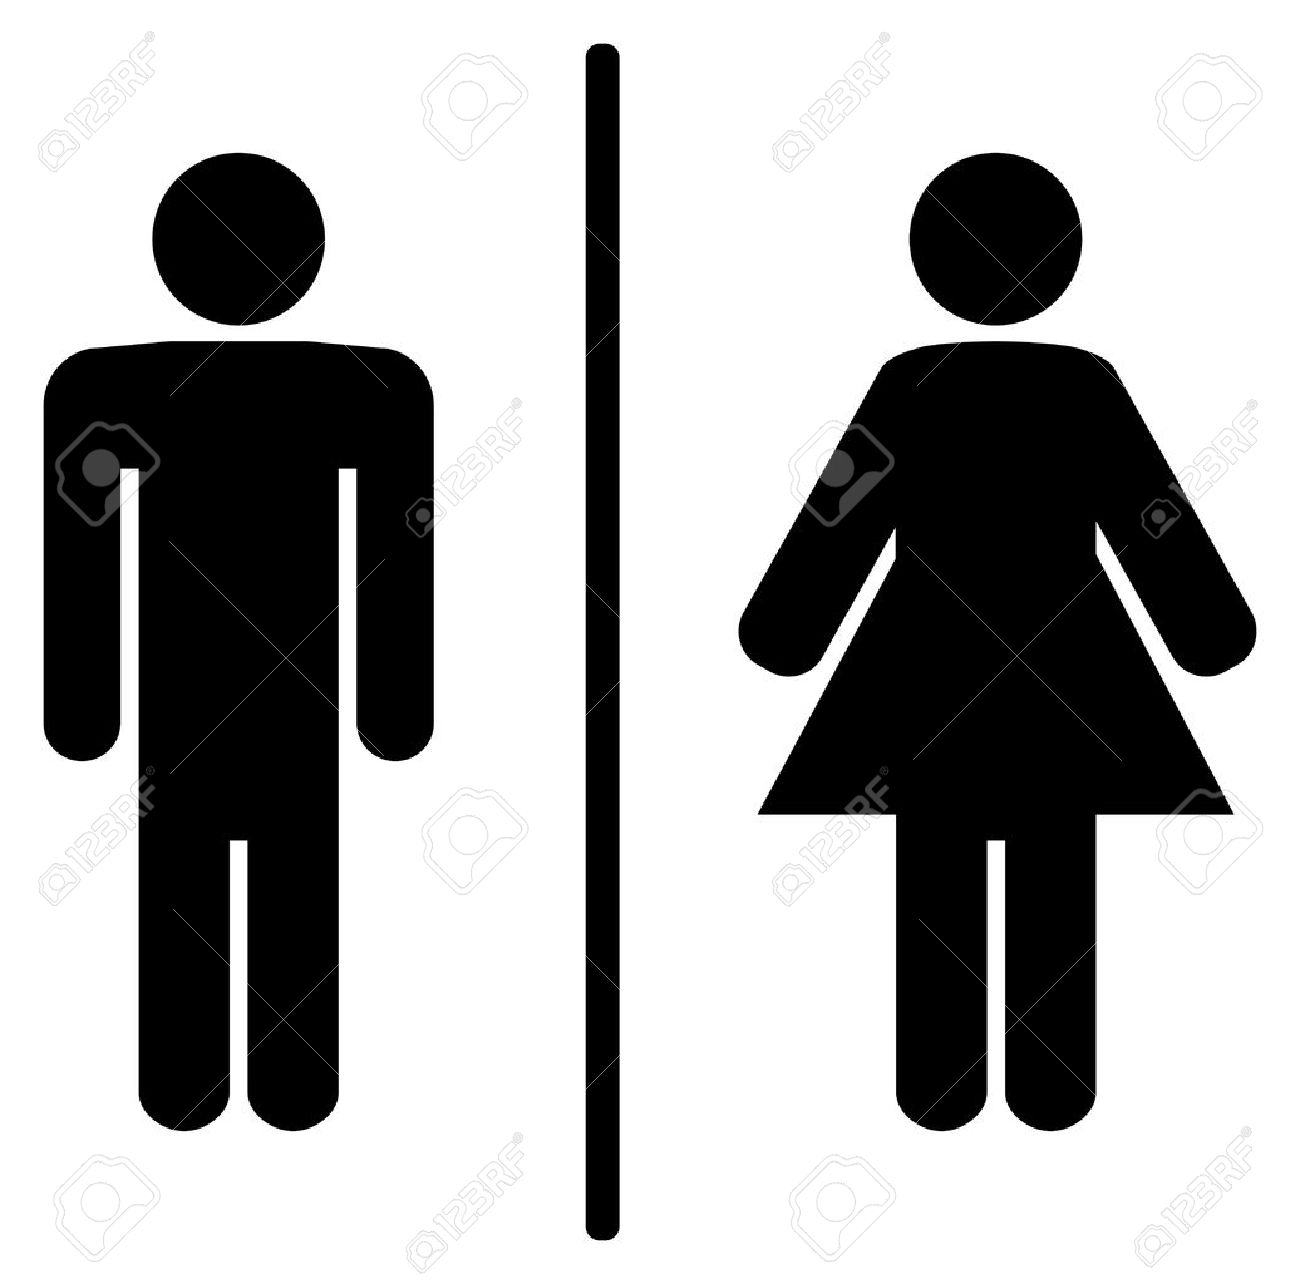 Toilet signs vector set stock images image 36323784 - A Man And A Lady Toilet Sign Royalty Free Cliparts Vectors And 21470426 A Man And A Lady Toilet Sign Stock Vector Photo 21470426 A Man And A Lady Toilet